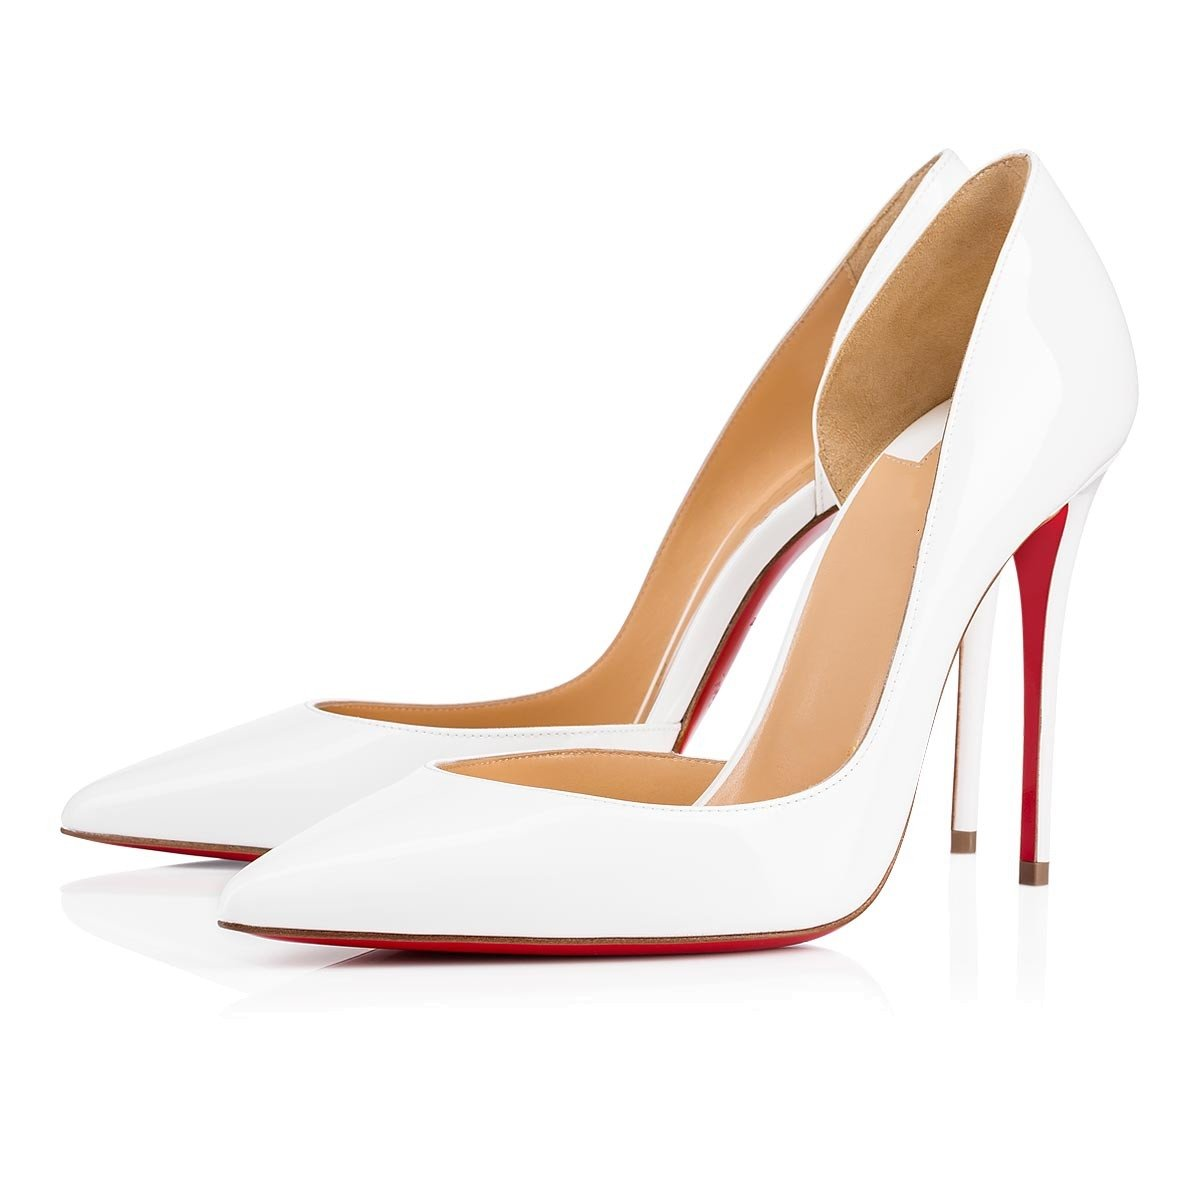 Chris-T Women Fashion D'Orsay Peep Toe with High Heel Stiletto Dress Party Pumps Size 5-15 US B07F7V441J 7 B(M) US|White R/Red S0le(bottom)